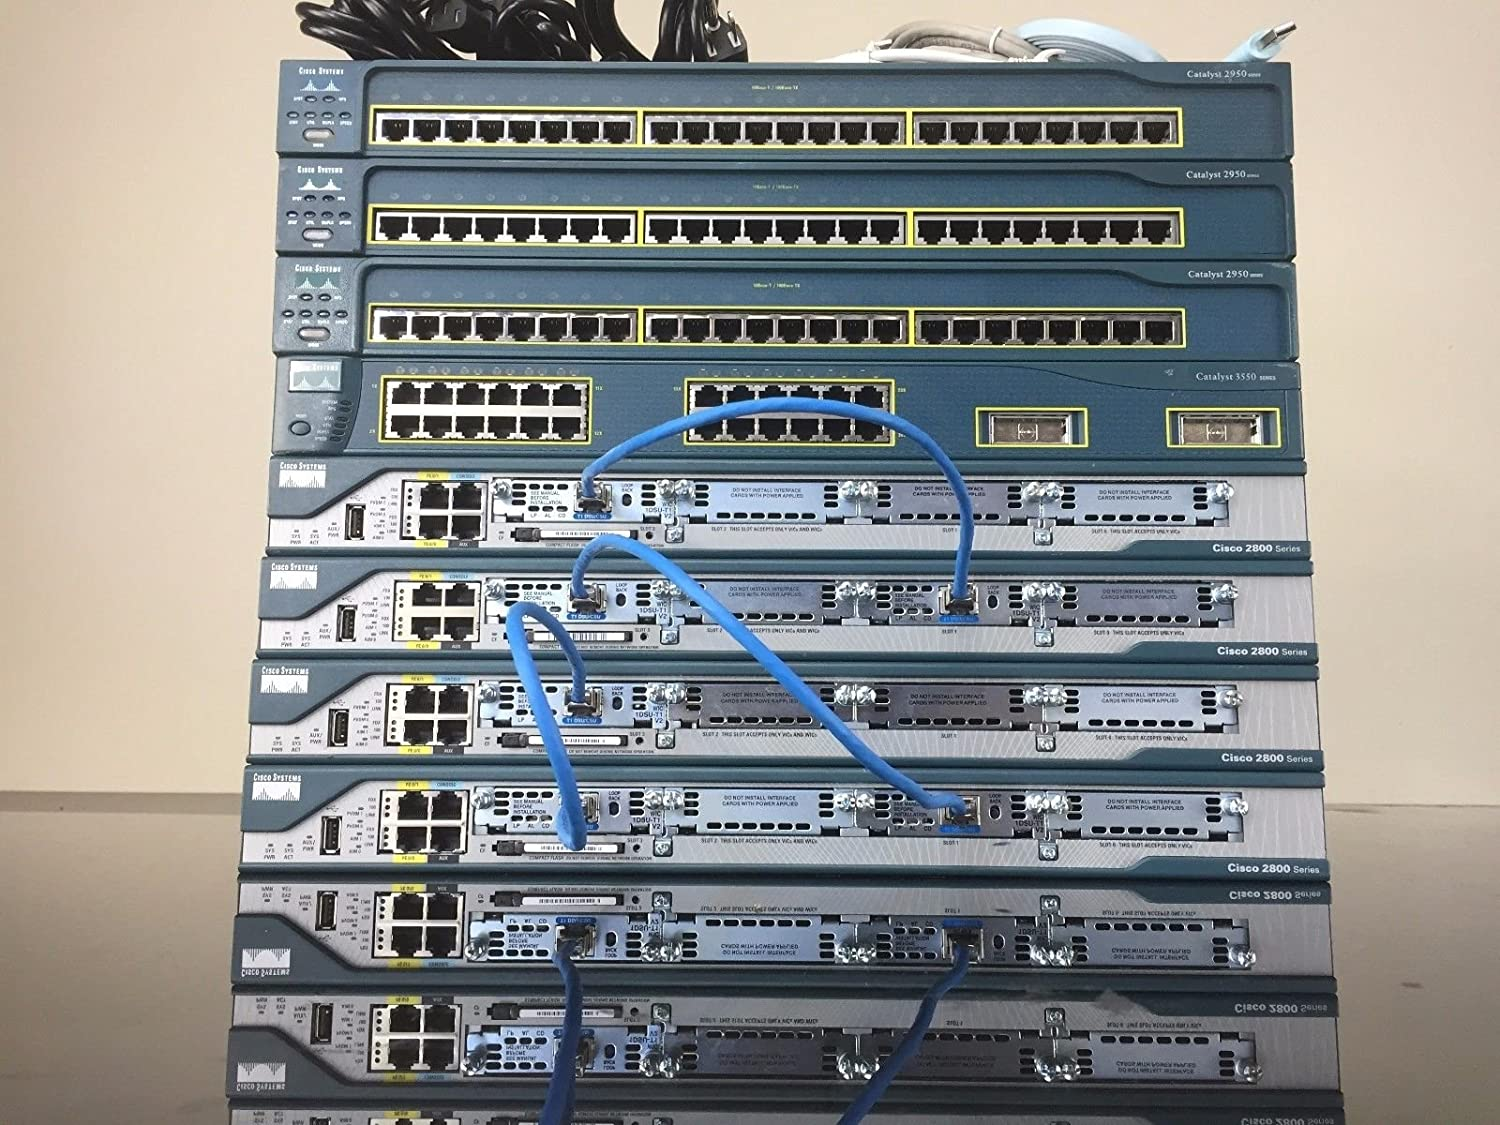 Ultimate Cisco CCNA and CCNP Complete Home lab kit 15.1 iOS CME 8.6